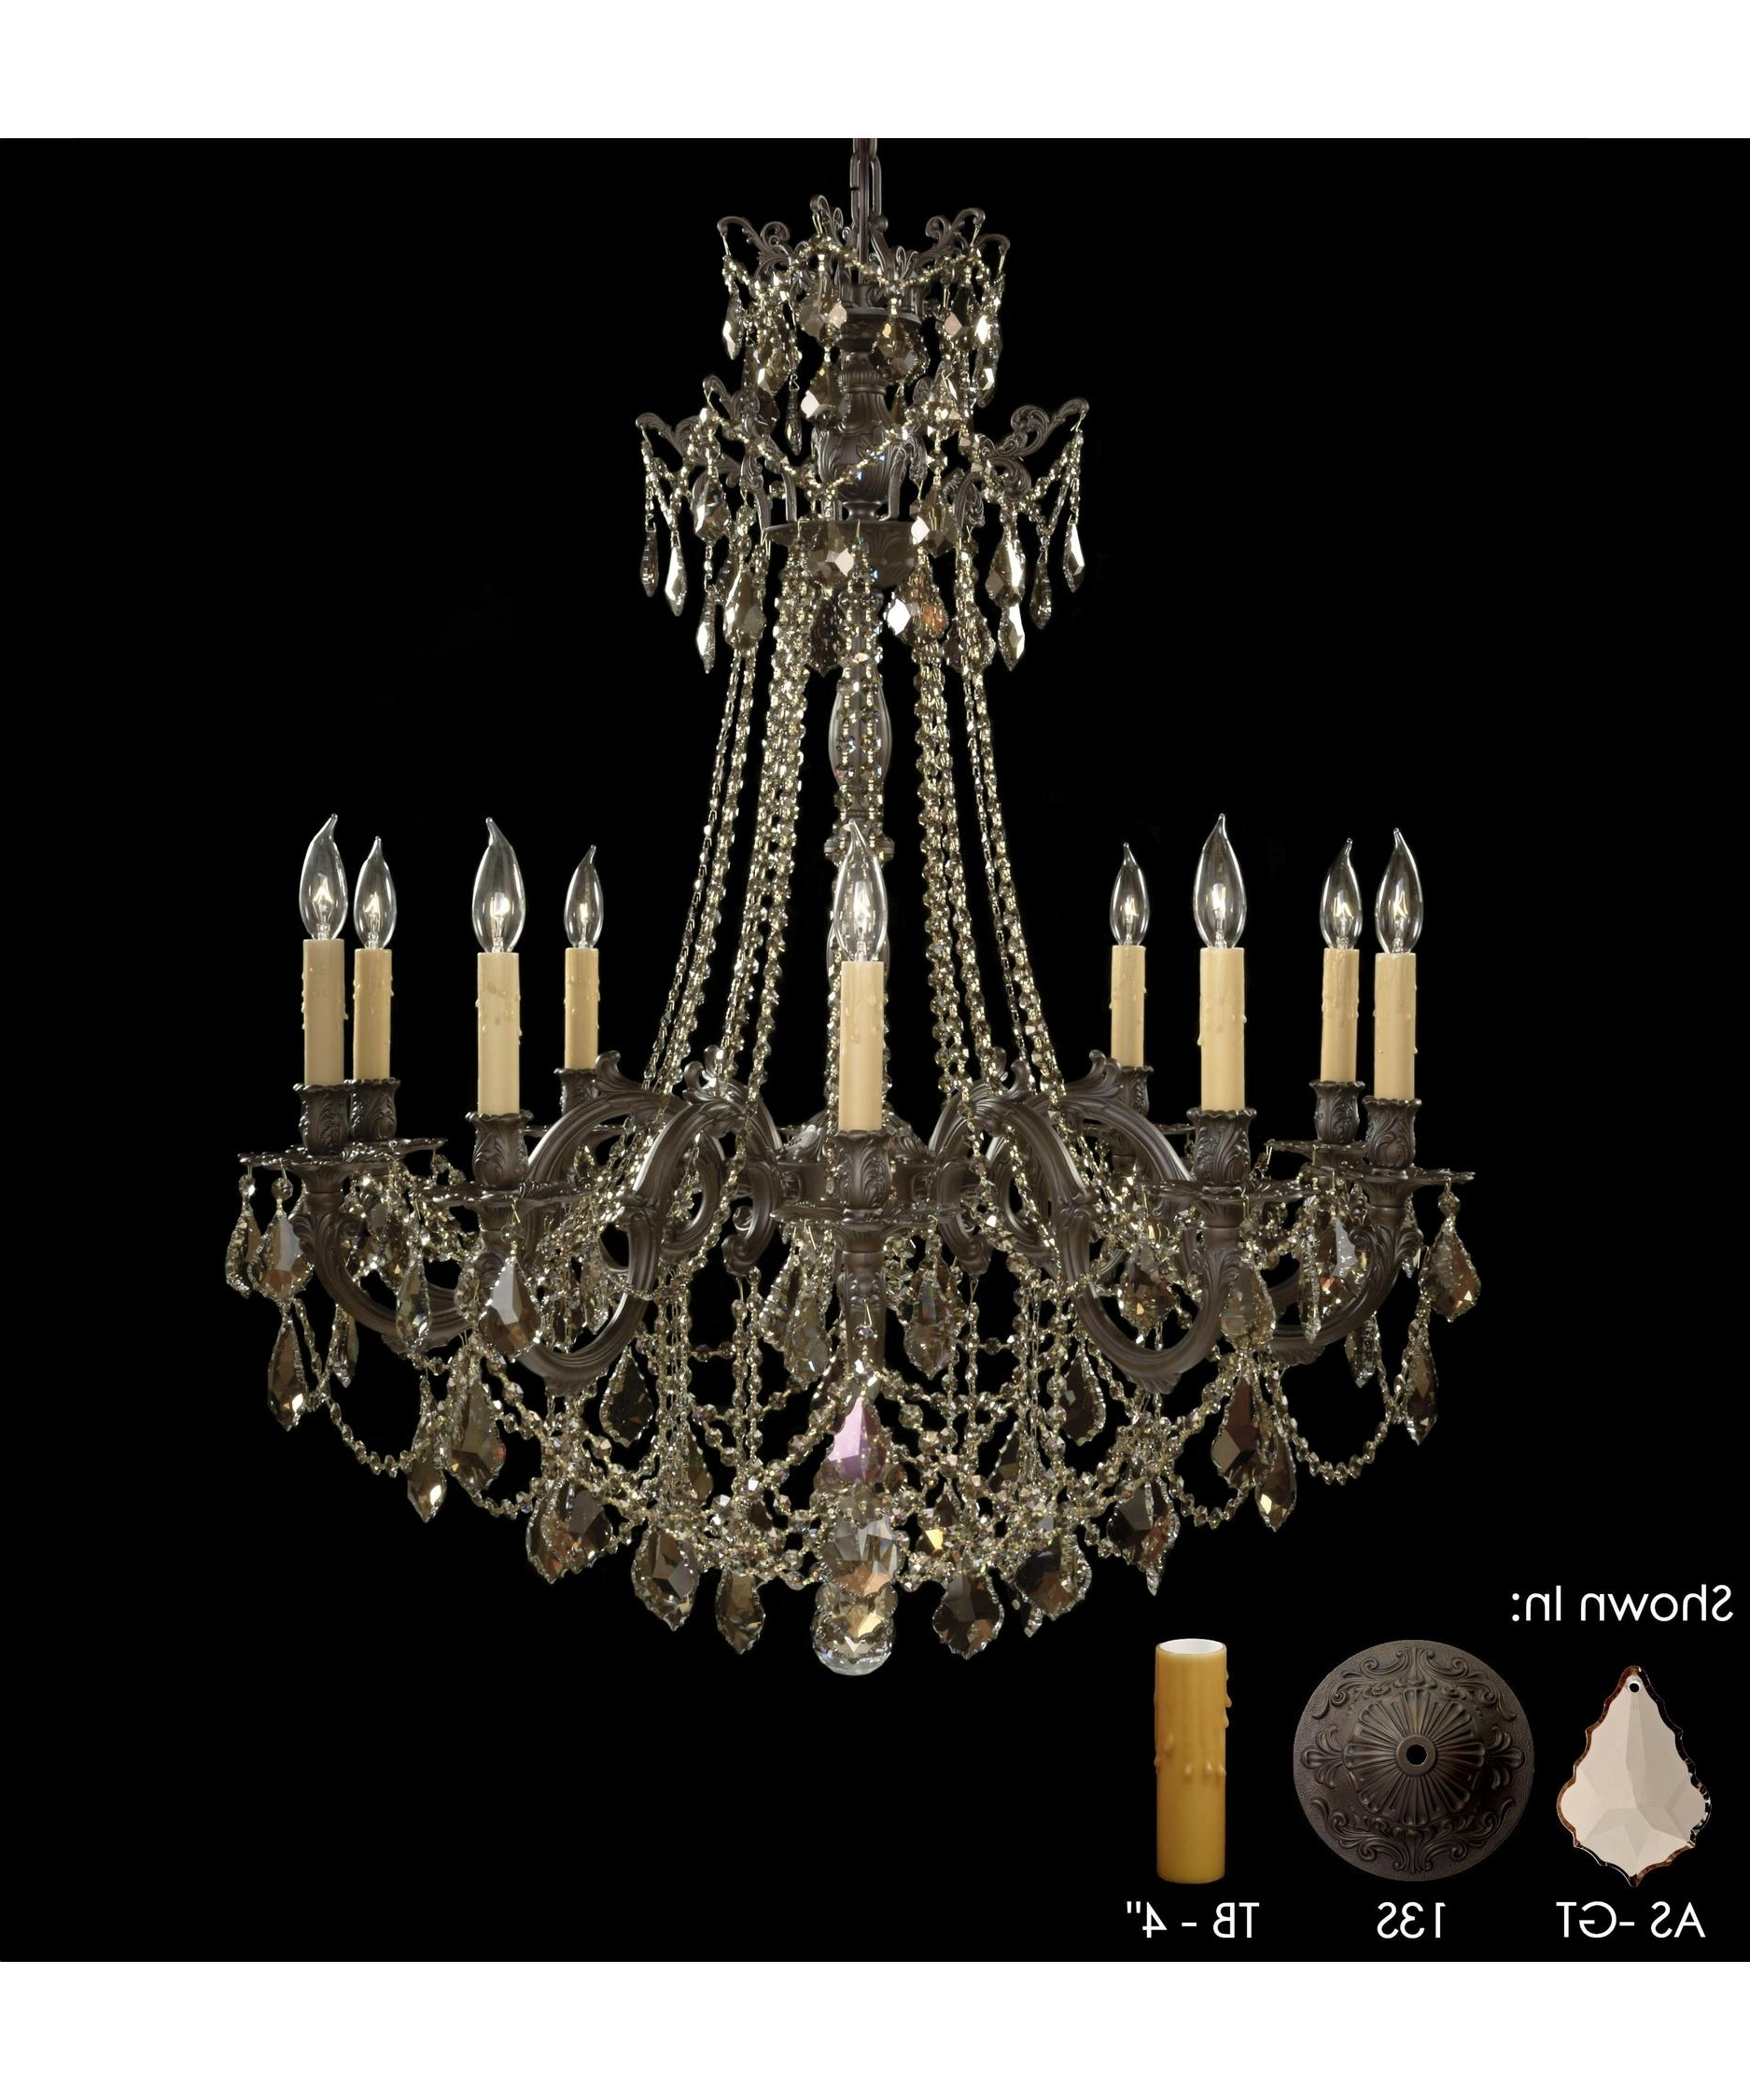 American Brass And Crystal Ch9258 Biella 36 Inch Wide 10 Light With Regard To Most Recent Brass And Crystal Chandelier (View 9 of 20)